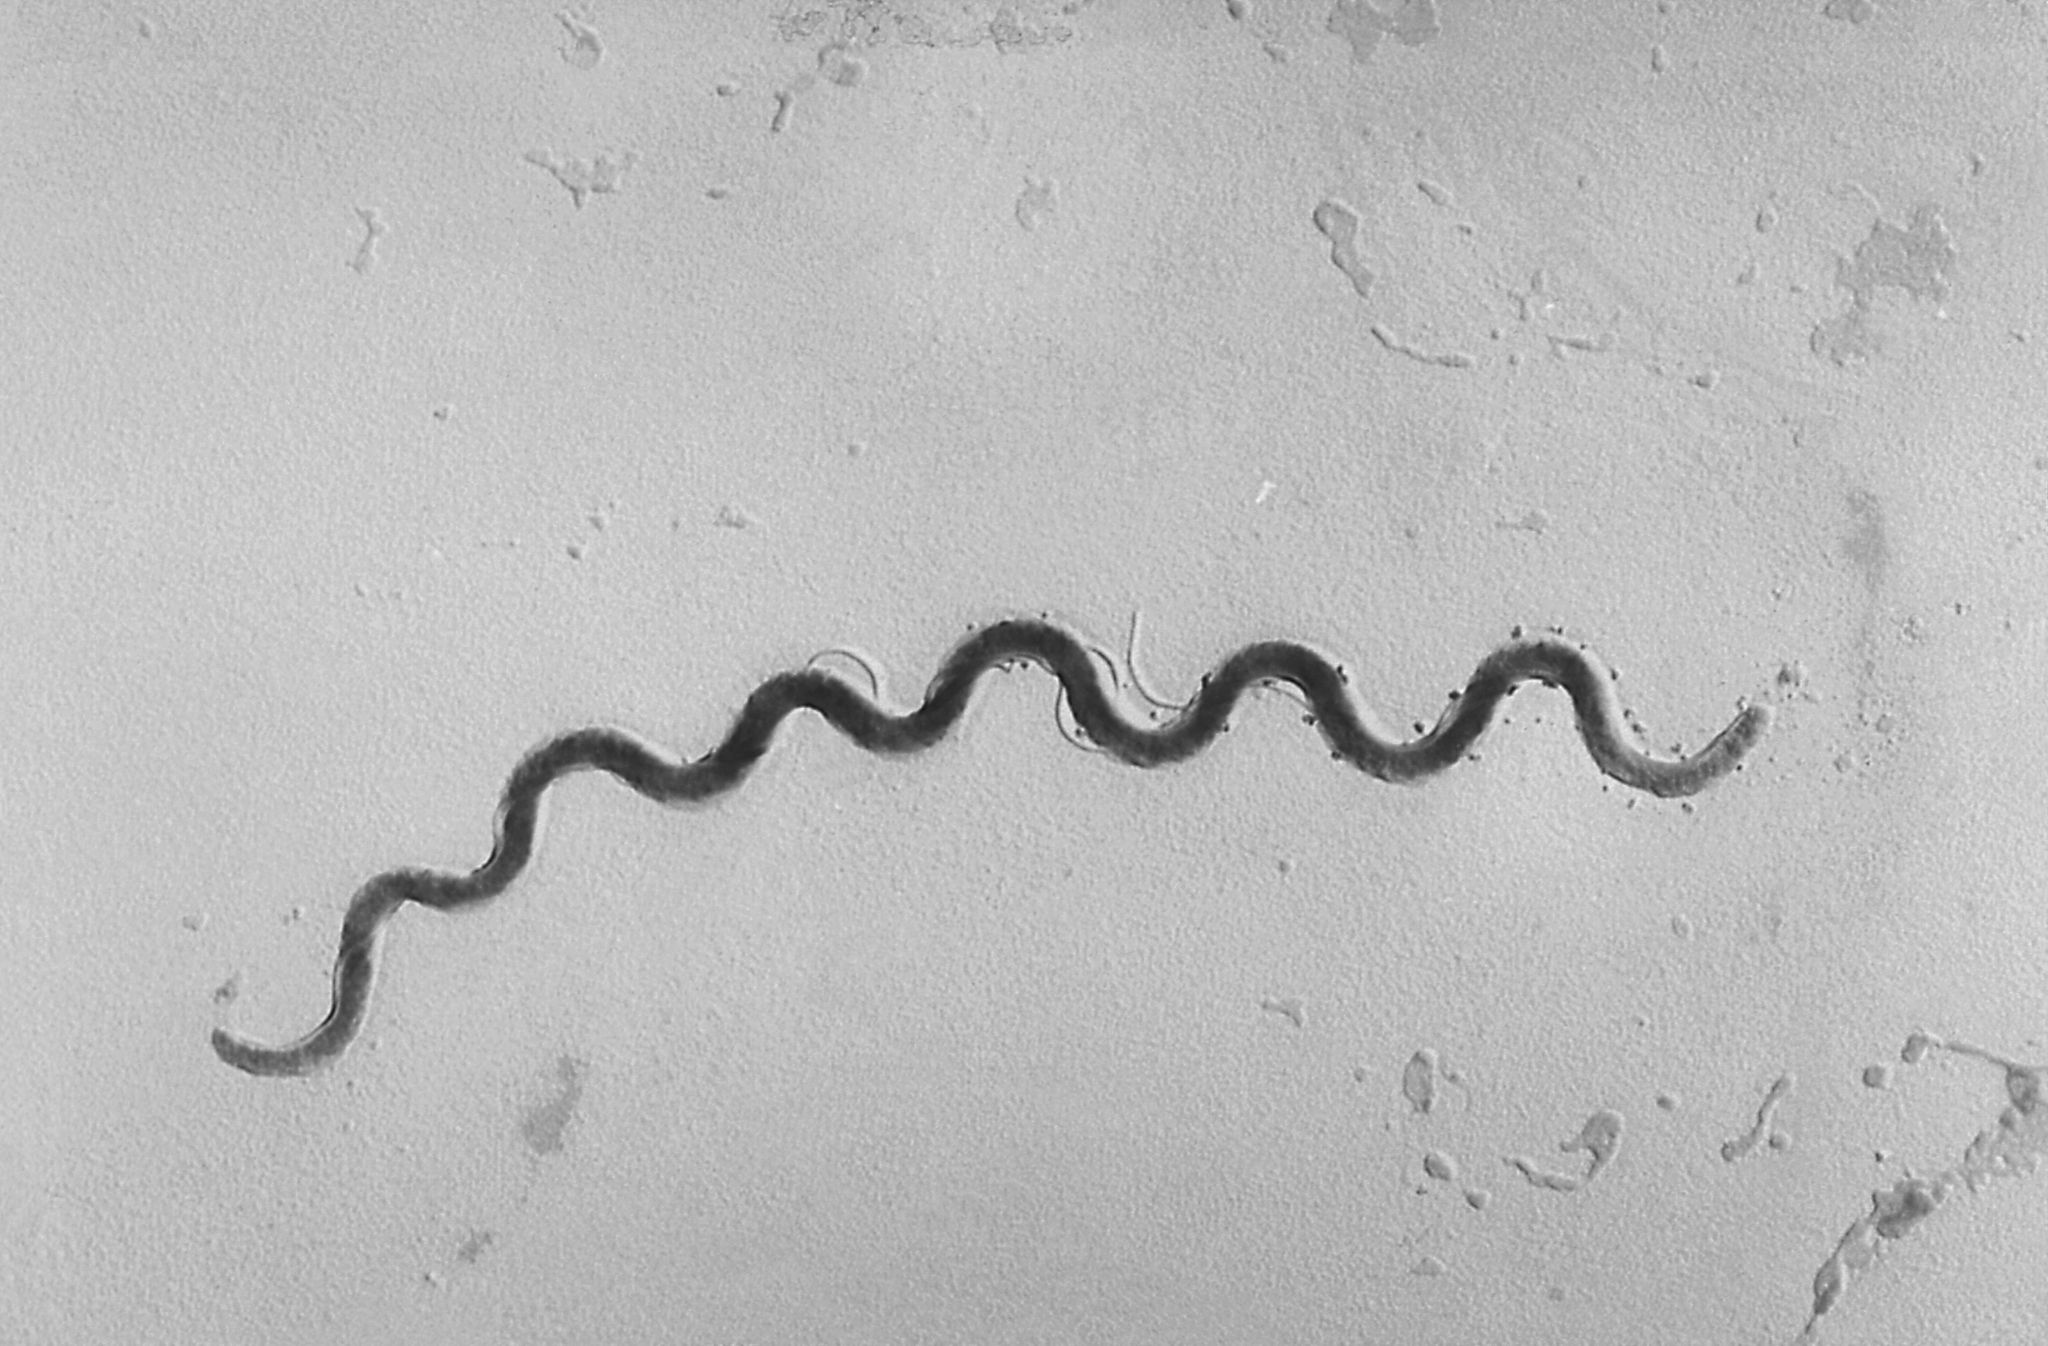 Syphilis cases in newborns more than doubled in 5 years, CDC says